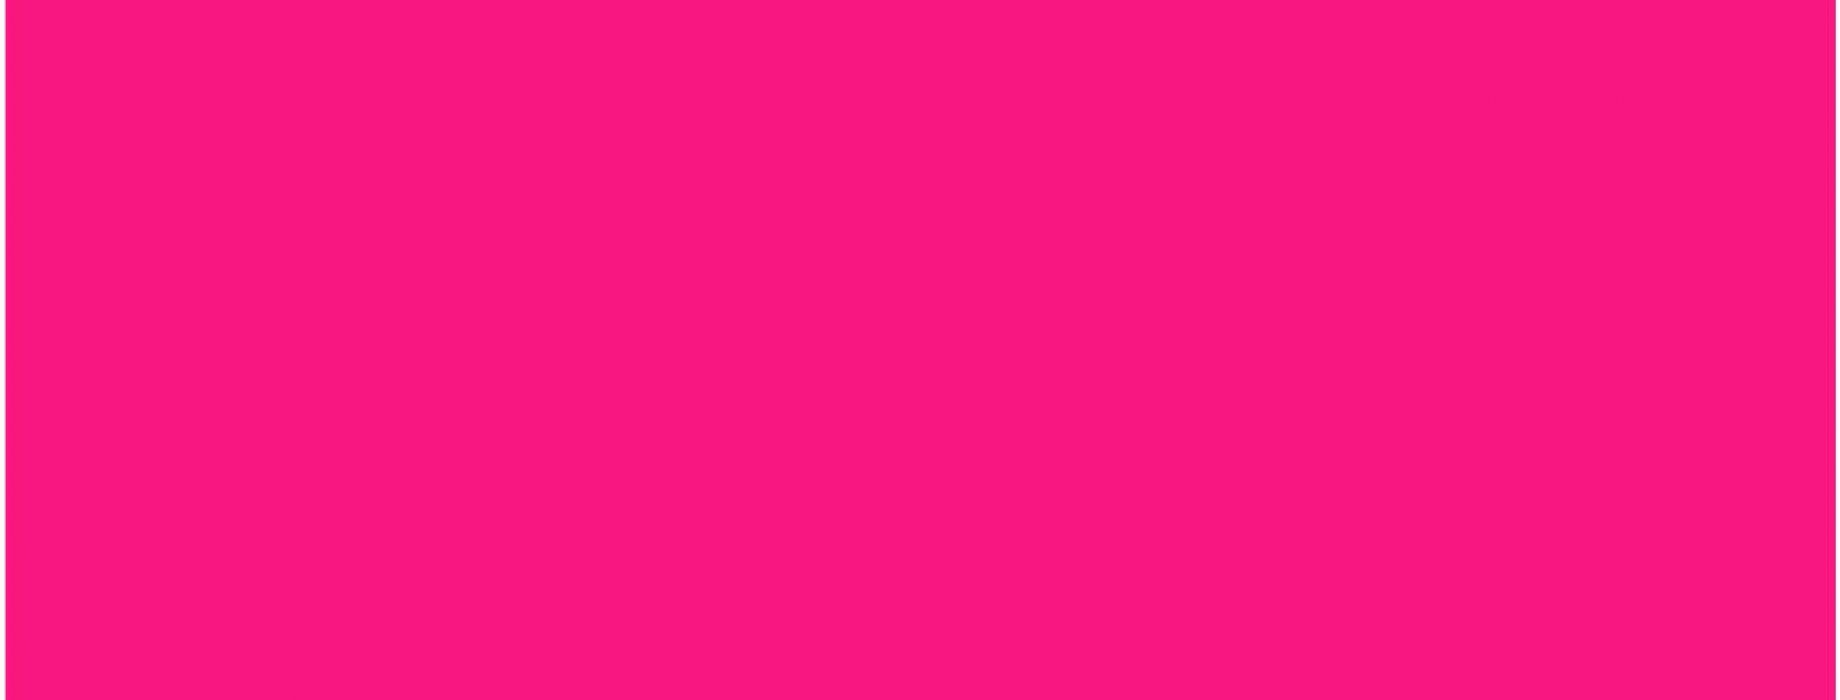 A rectangle of pink